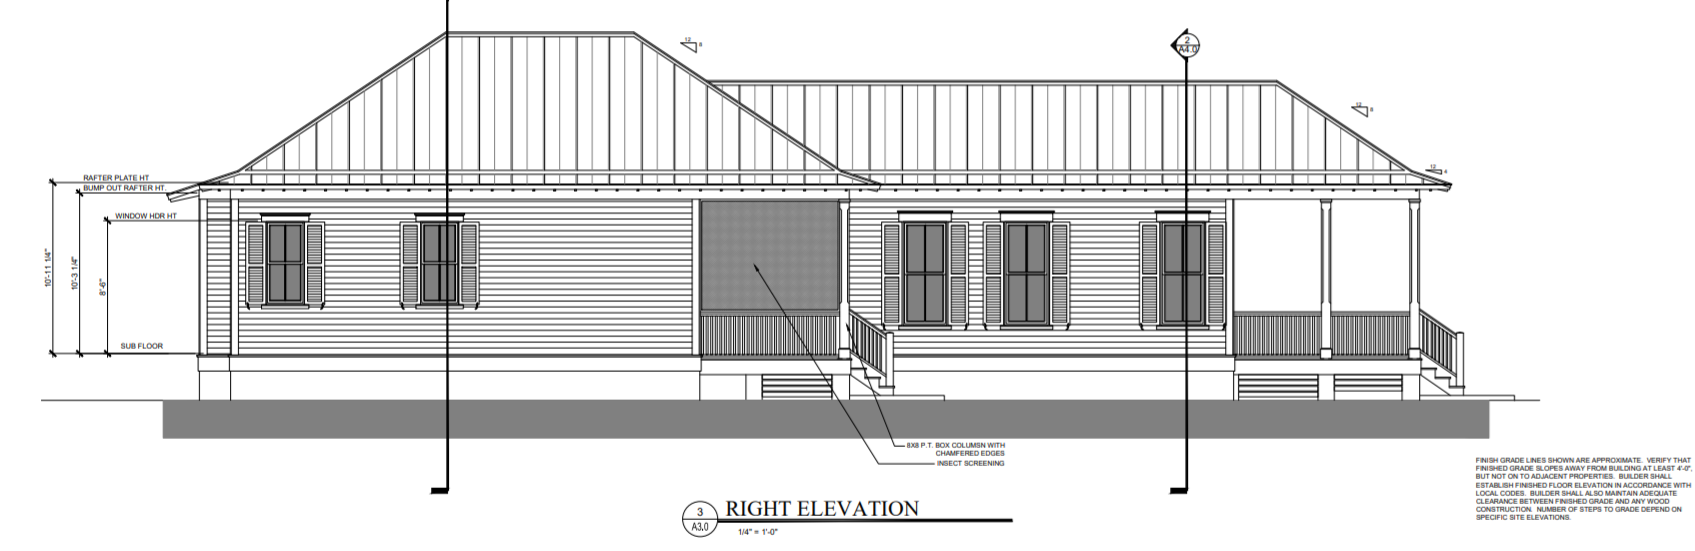 1103 14th St Port Royal Cottage Elevation